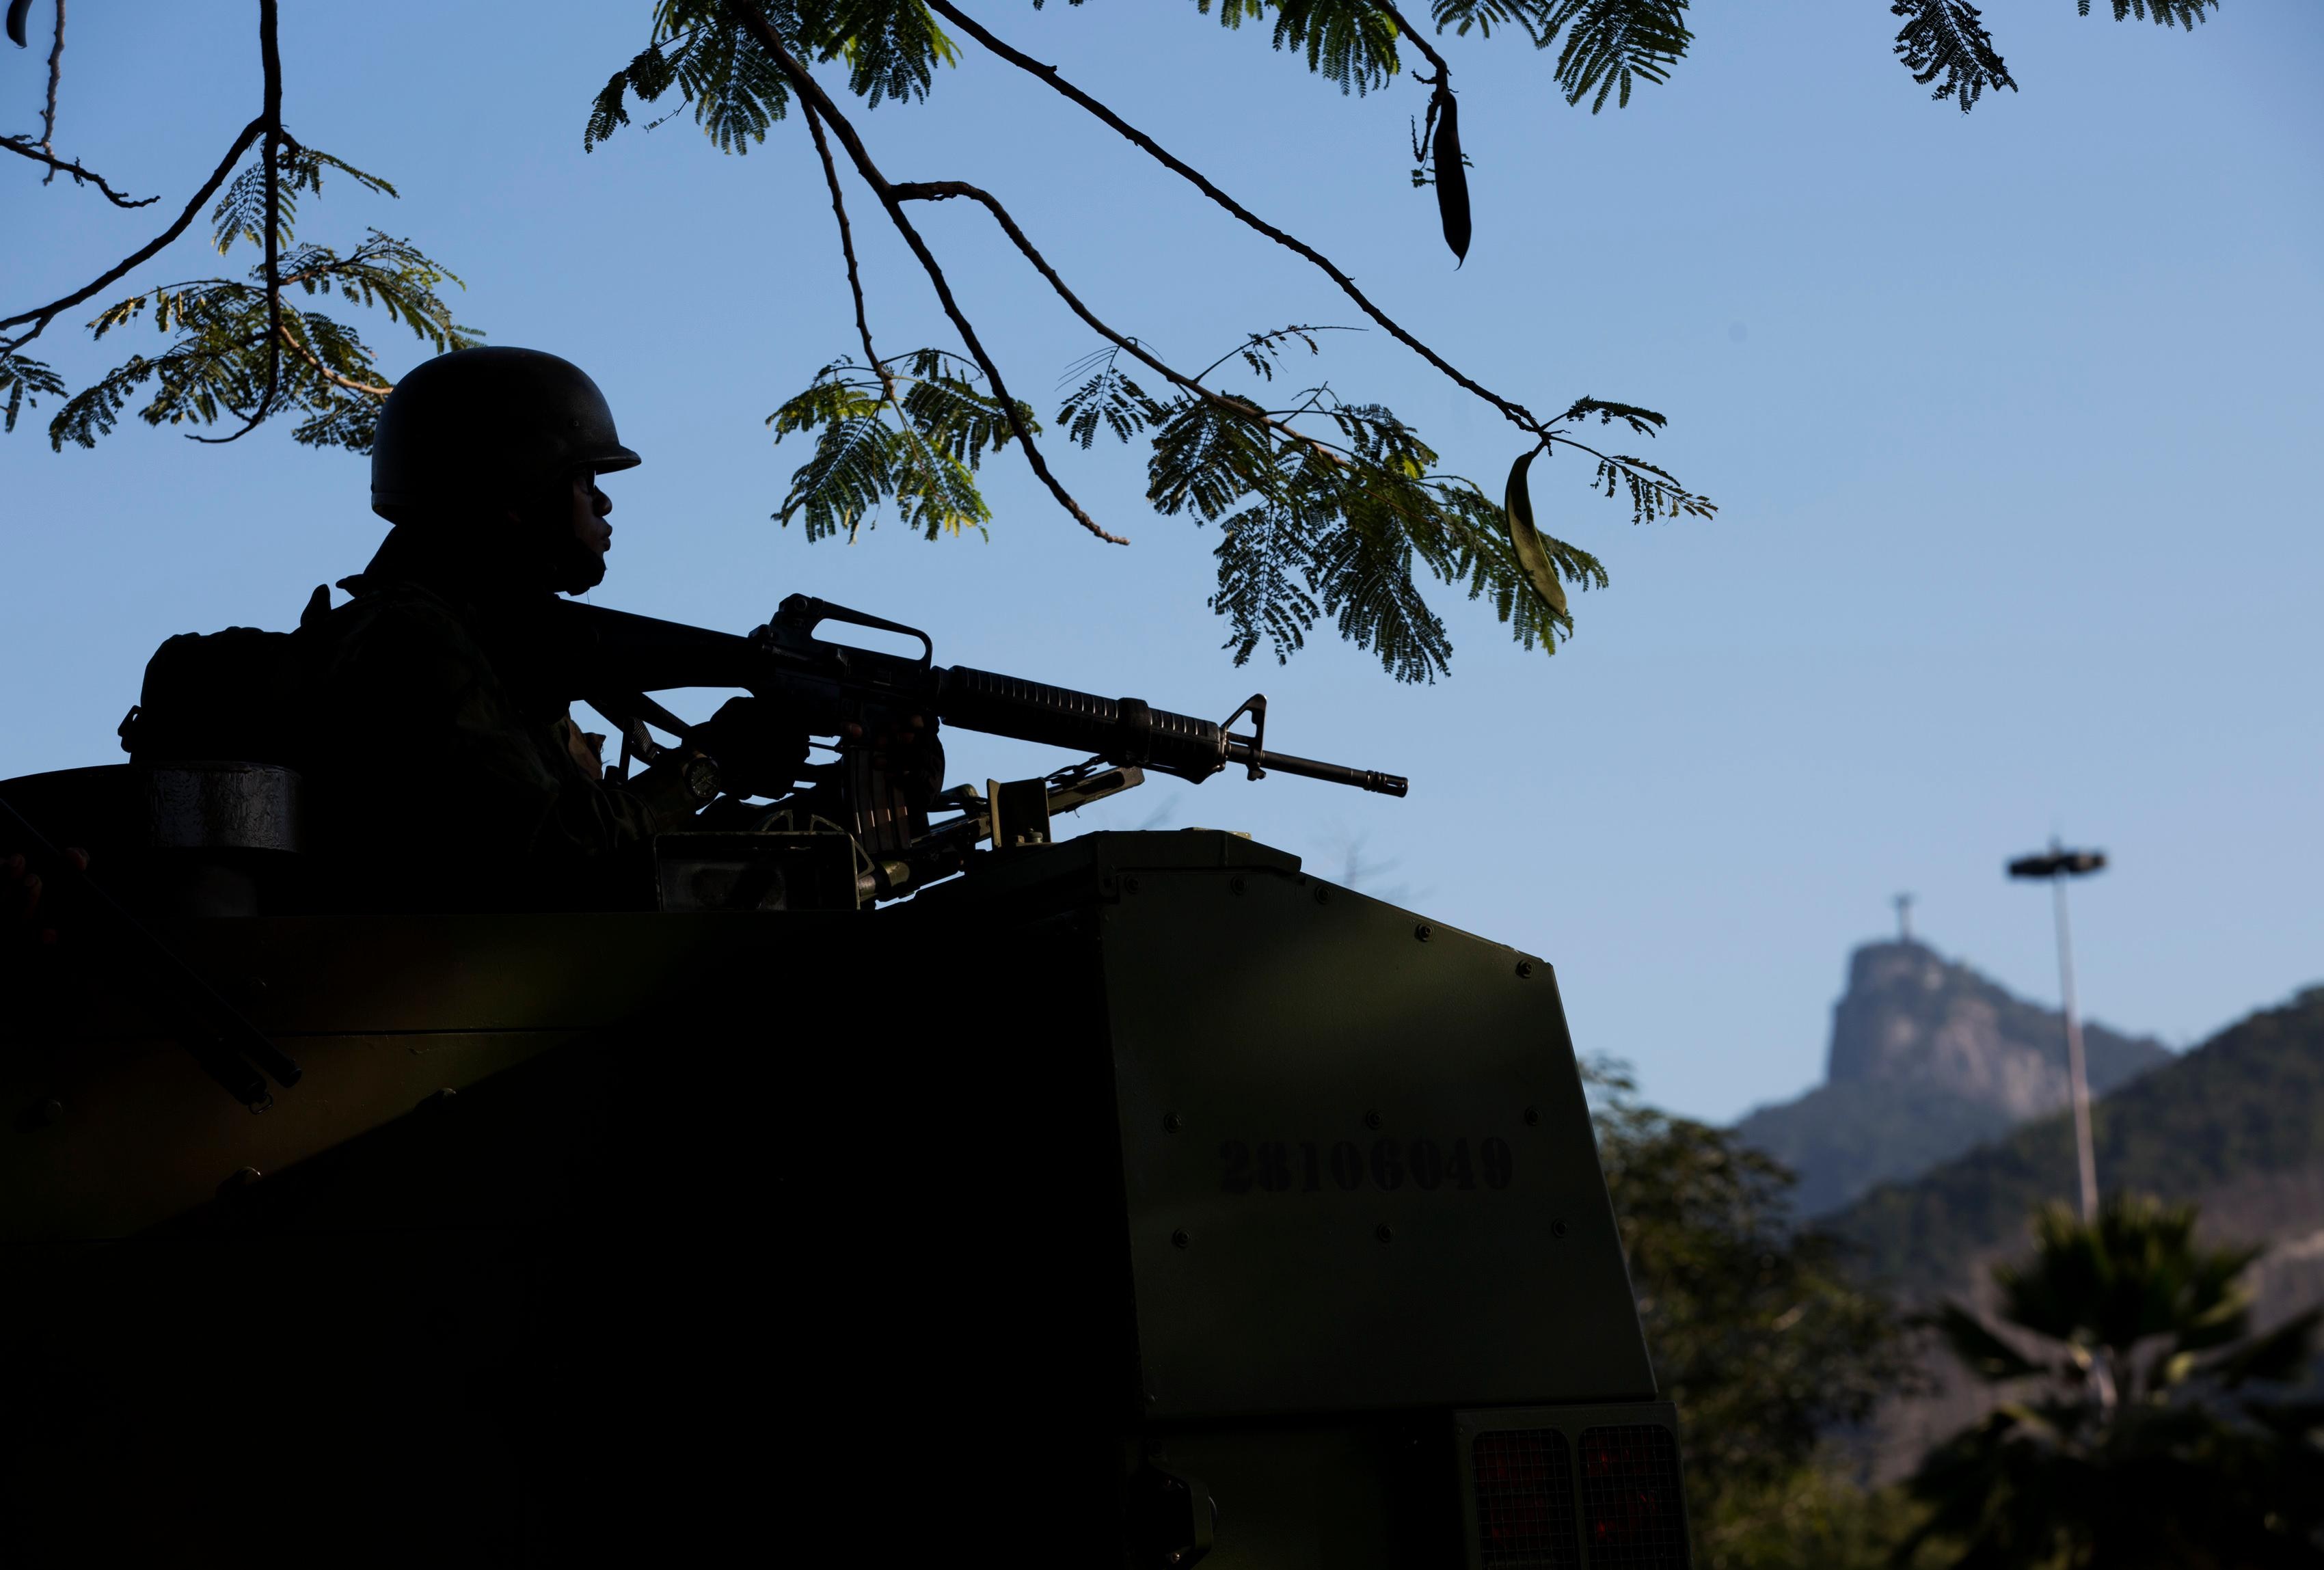 A Navy soldier patrols near the Santos Dumont Airport in Rio de Janeiro, Brazil, Friday, July 28, 2017.  Thousands of Brazilian soldiers have begun patrolling in Rio de Janeiro amid a spike in violence. (AP Photo/Silvia Izquierdo)